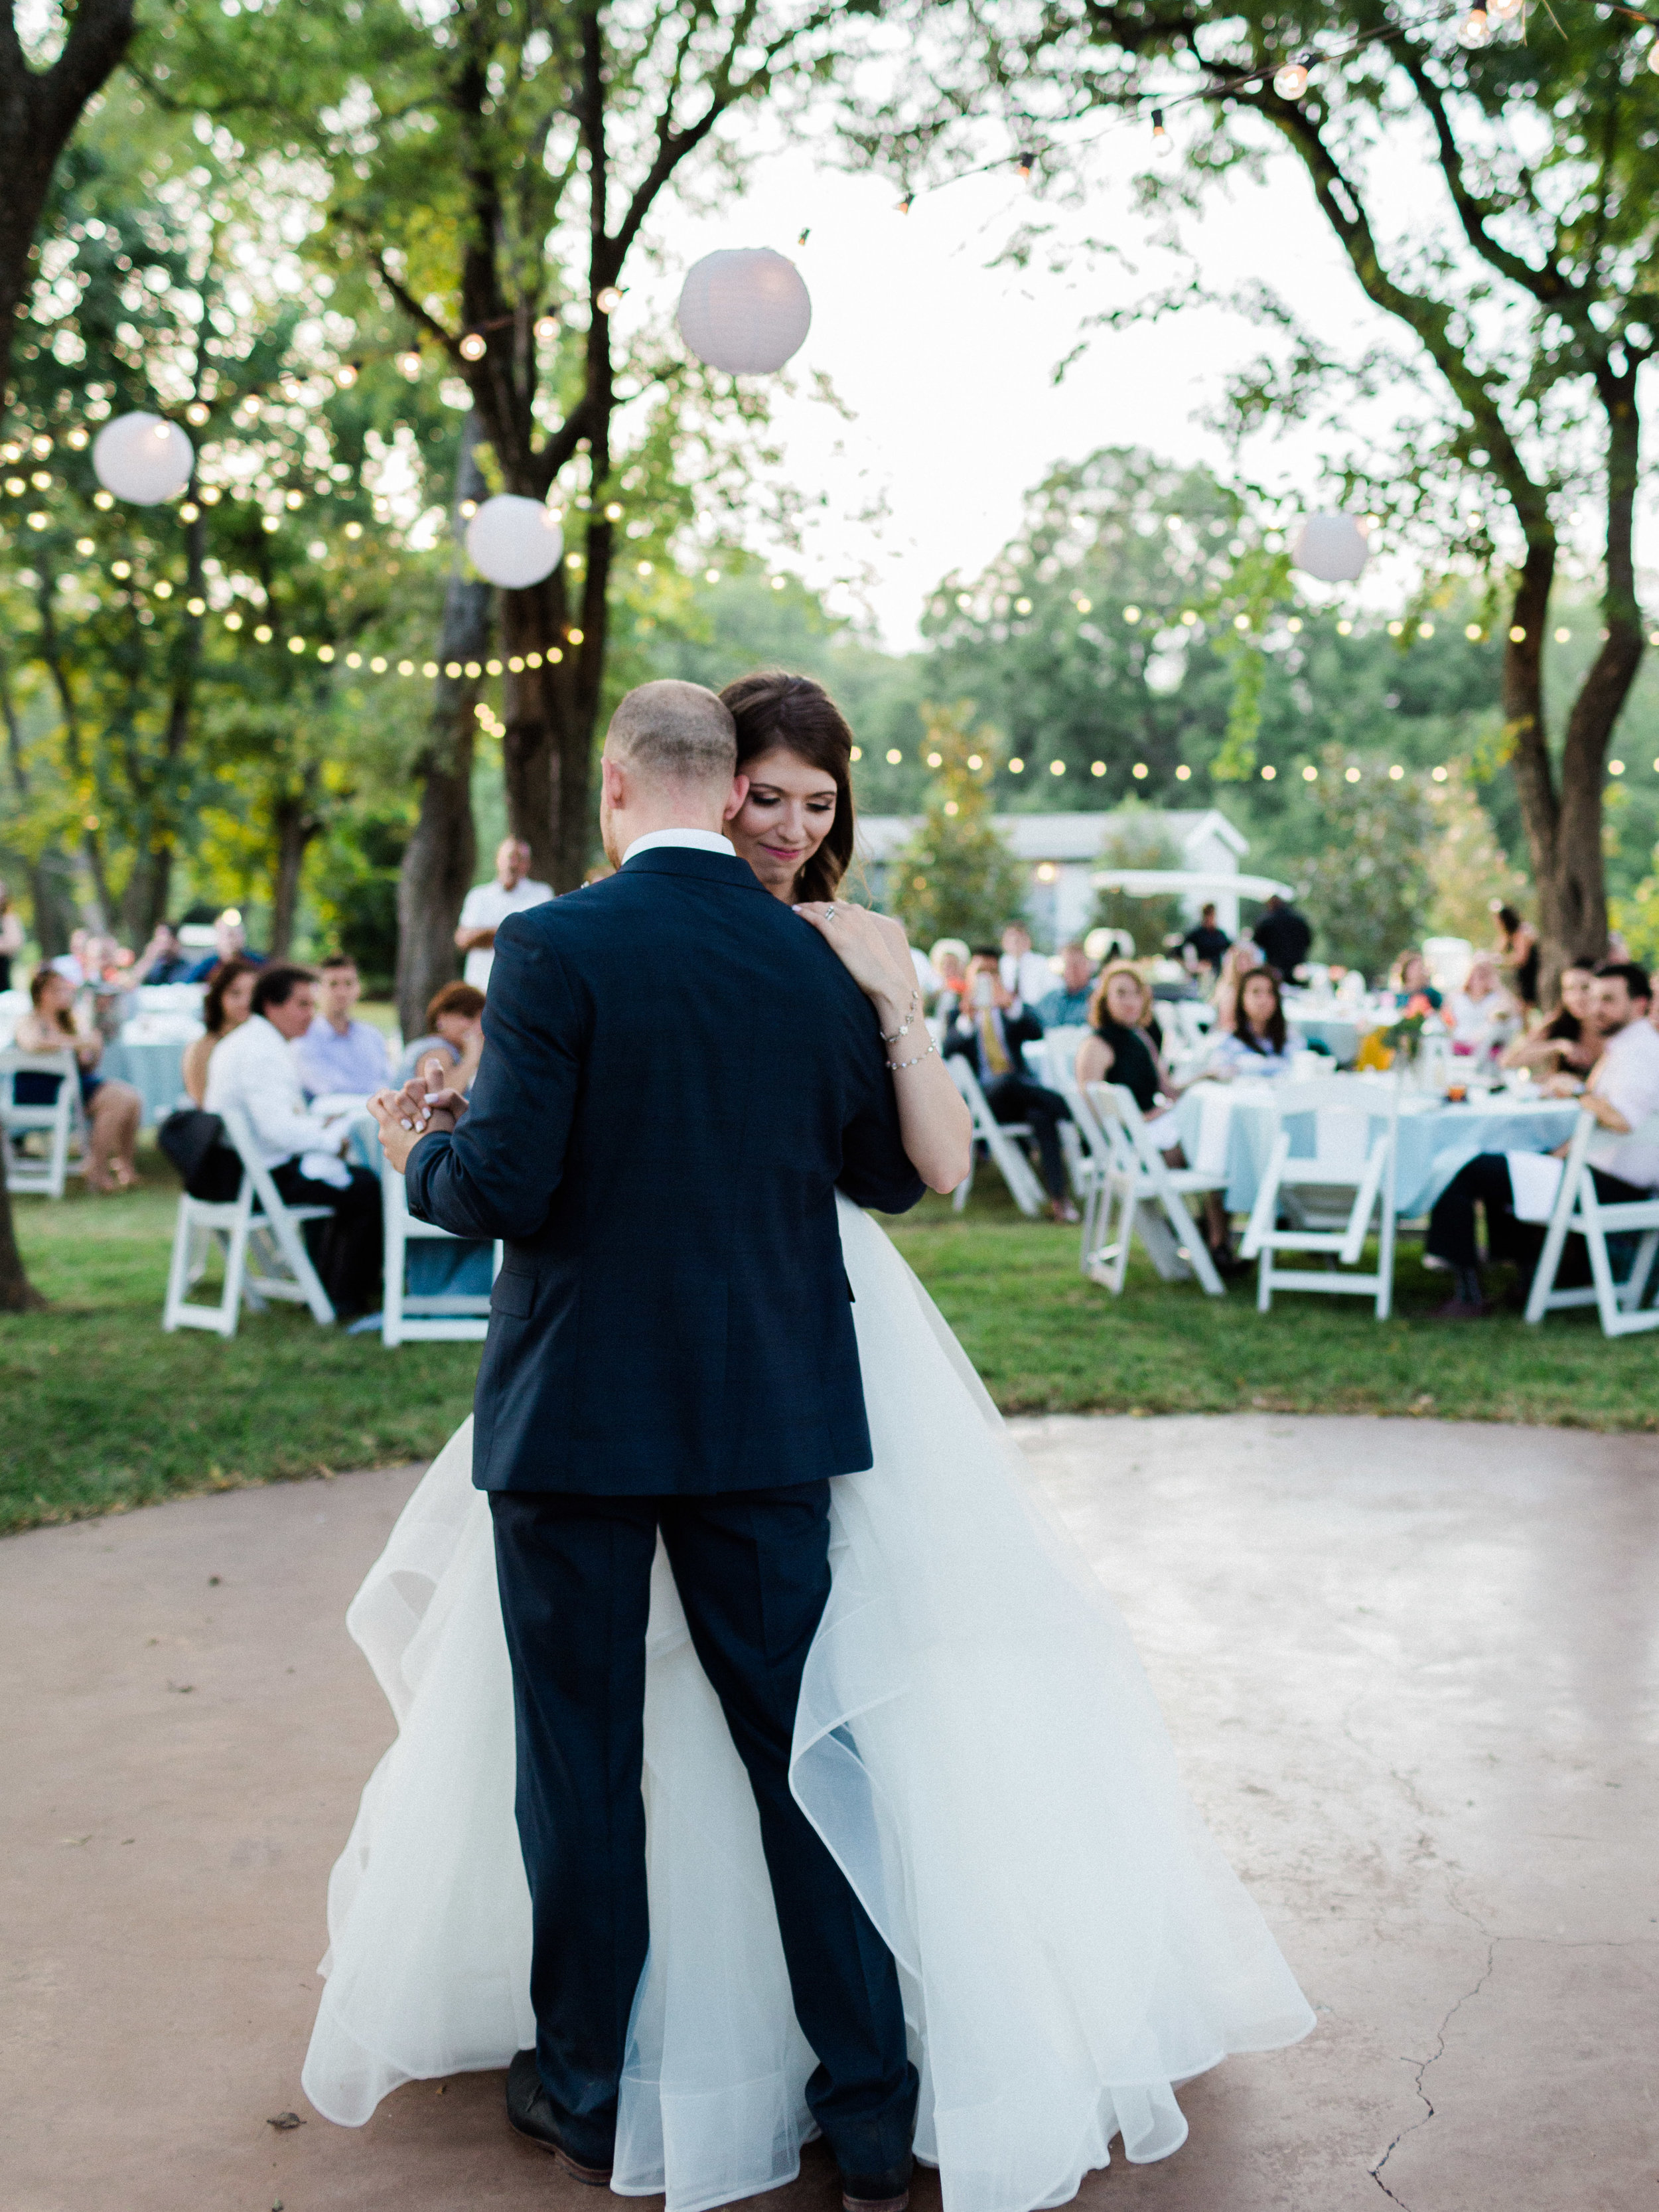 First dance at Chandlers gardens